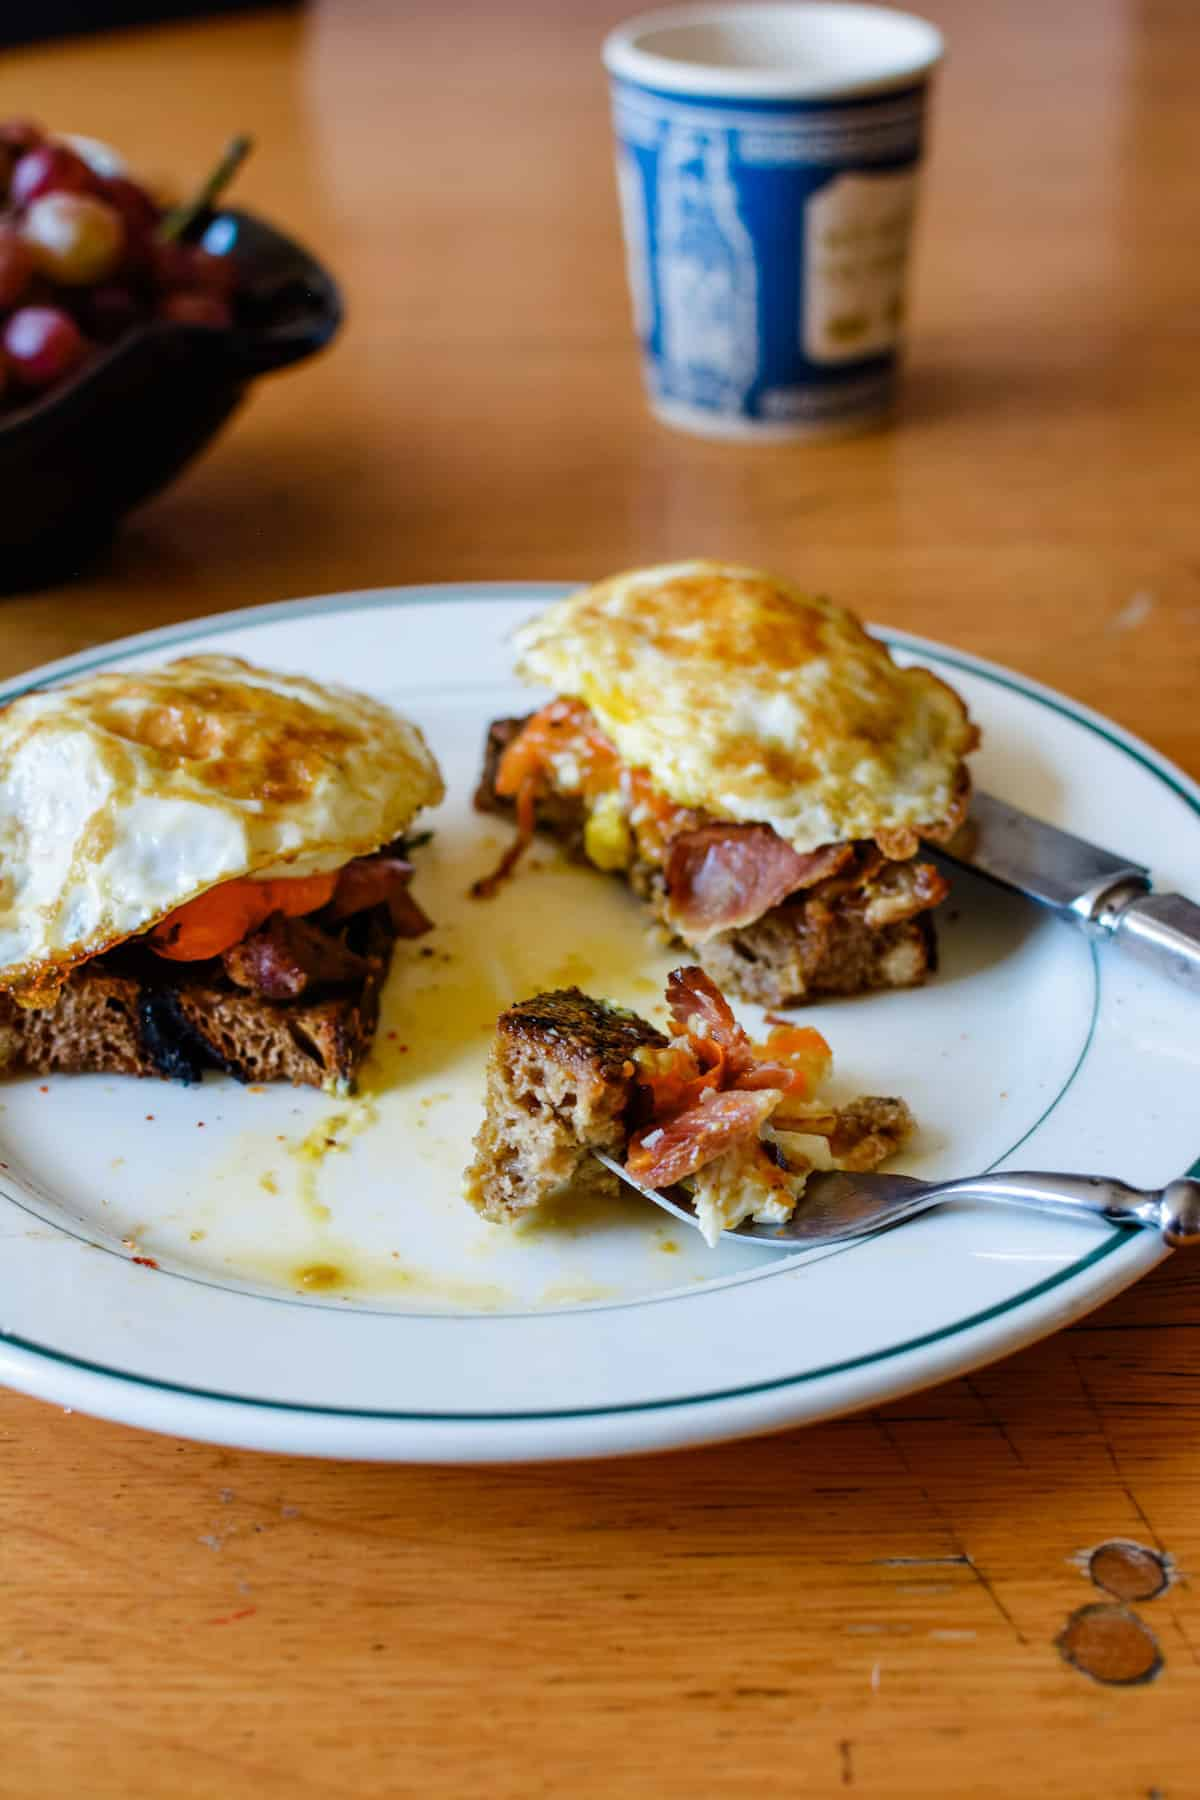 An image of a leftover ham recipe using it to make bruschetta with the ham on toast and a fried egg on top. The bruschetta is cut in two.